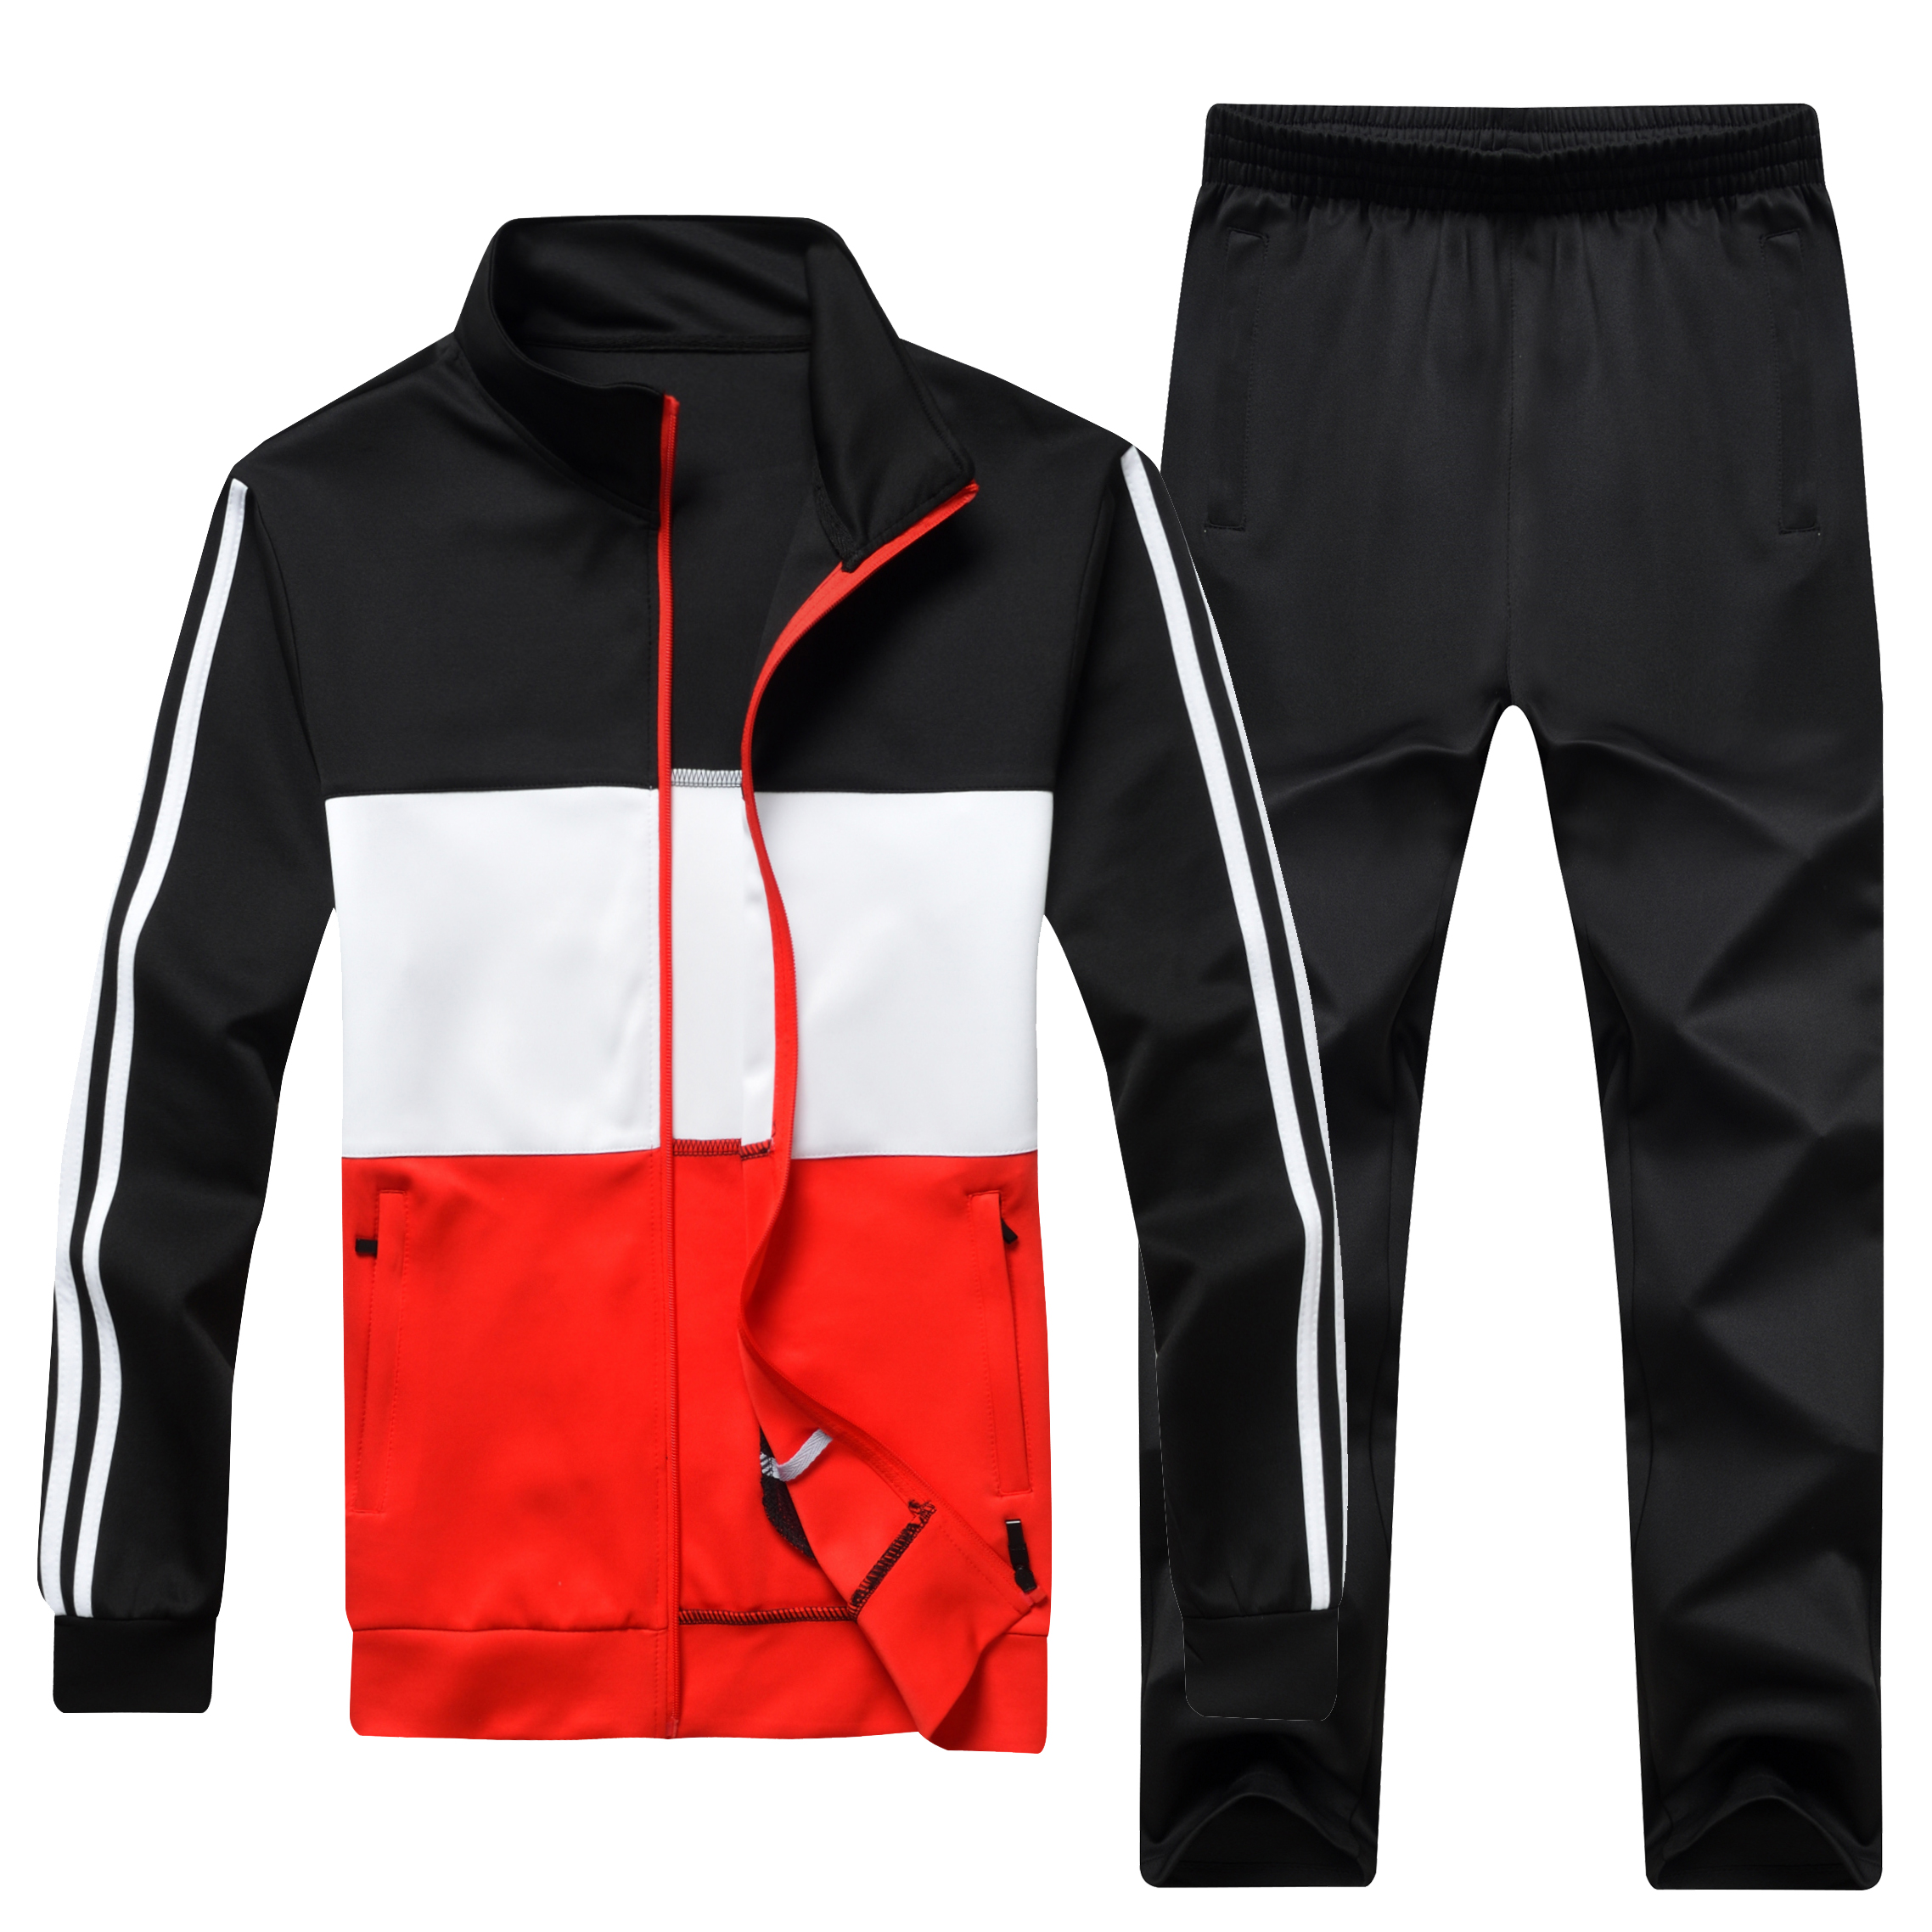 Men's Sportswear Tracksuit Men Track Suit Jacket+Pants 2 Two Pieces Clothing Set Casual Male Spring Autumn Sweatsuit 4XL 5XL